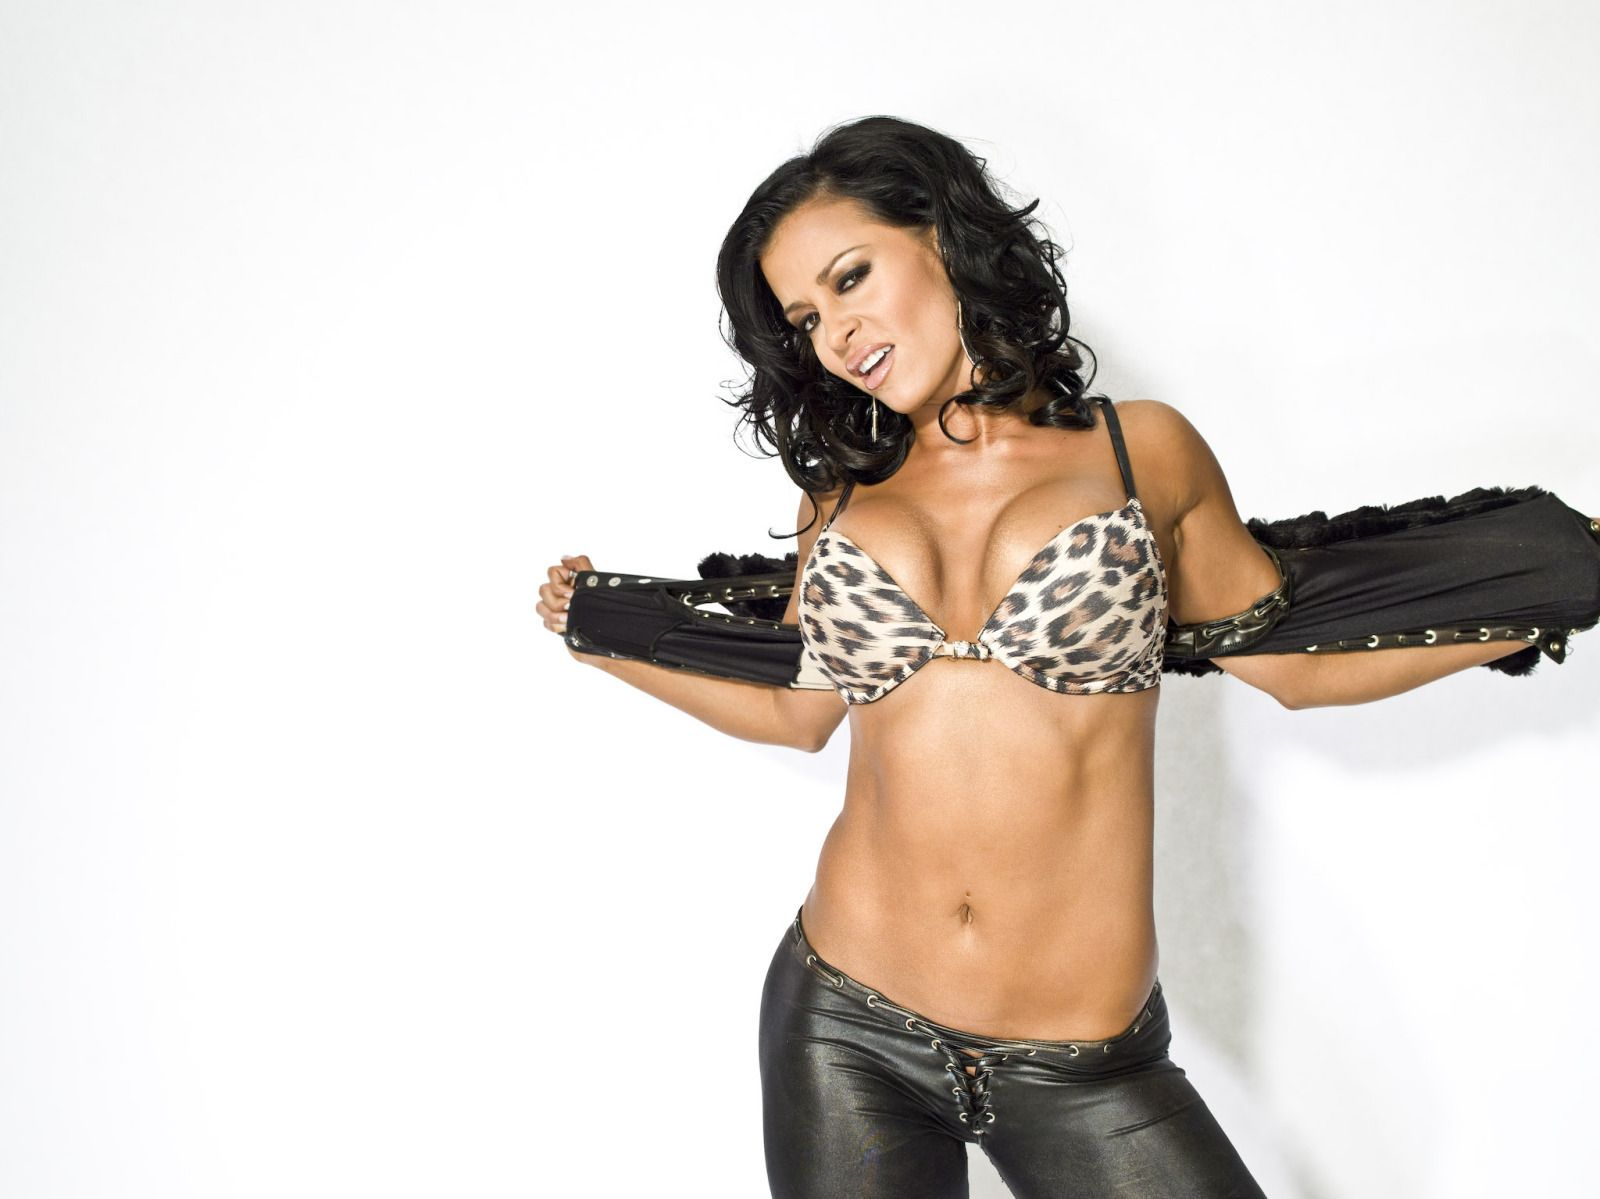 Wwe Candice Michelle Porn Great candice michelle | candice michelle | pinterest | wwe divas